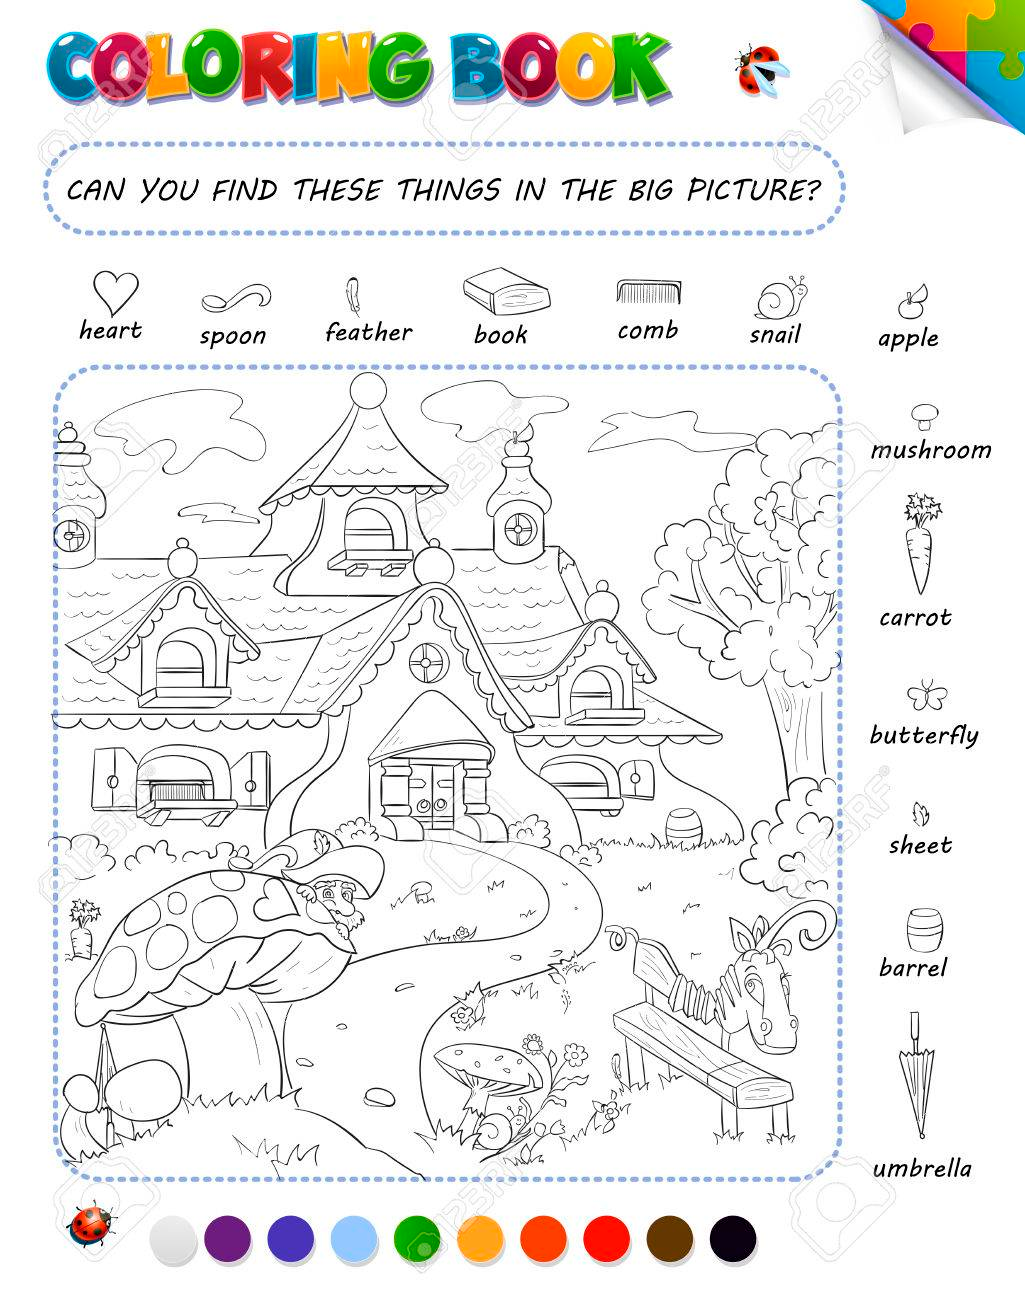 Coloring Book Game For Kids Setting Can You Find These Things Coloring Books Hidden Pictures Hidden Pictures Printables